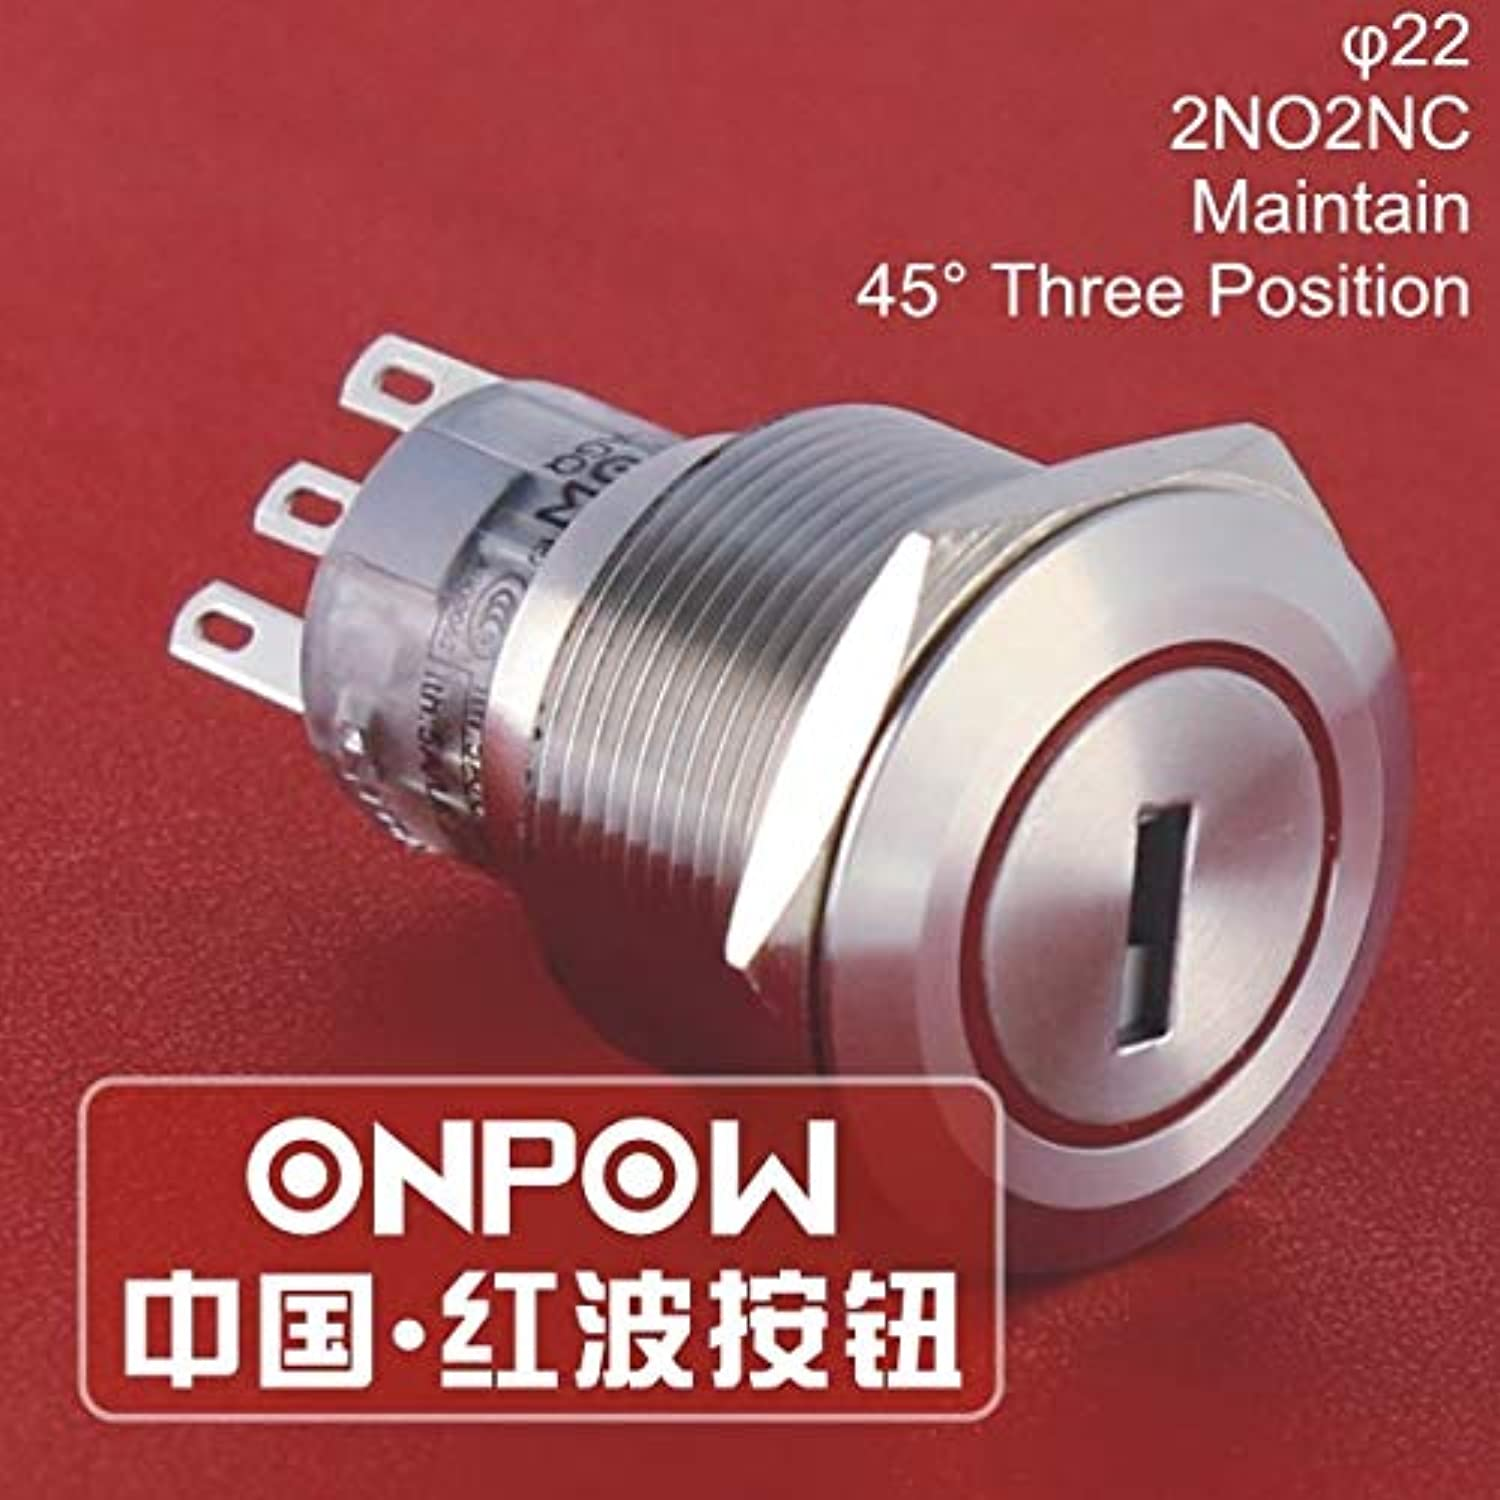 22mm Three posistion Maintain 2NO2NC Stainless Steel Electronic Key redary Switch with Keys (GQ22A22Y 31 S) CE, RoHS